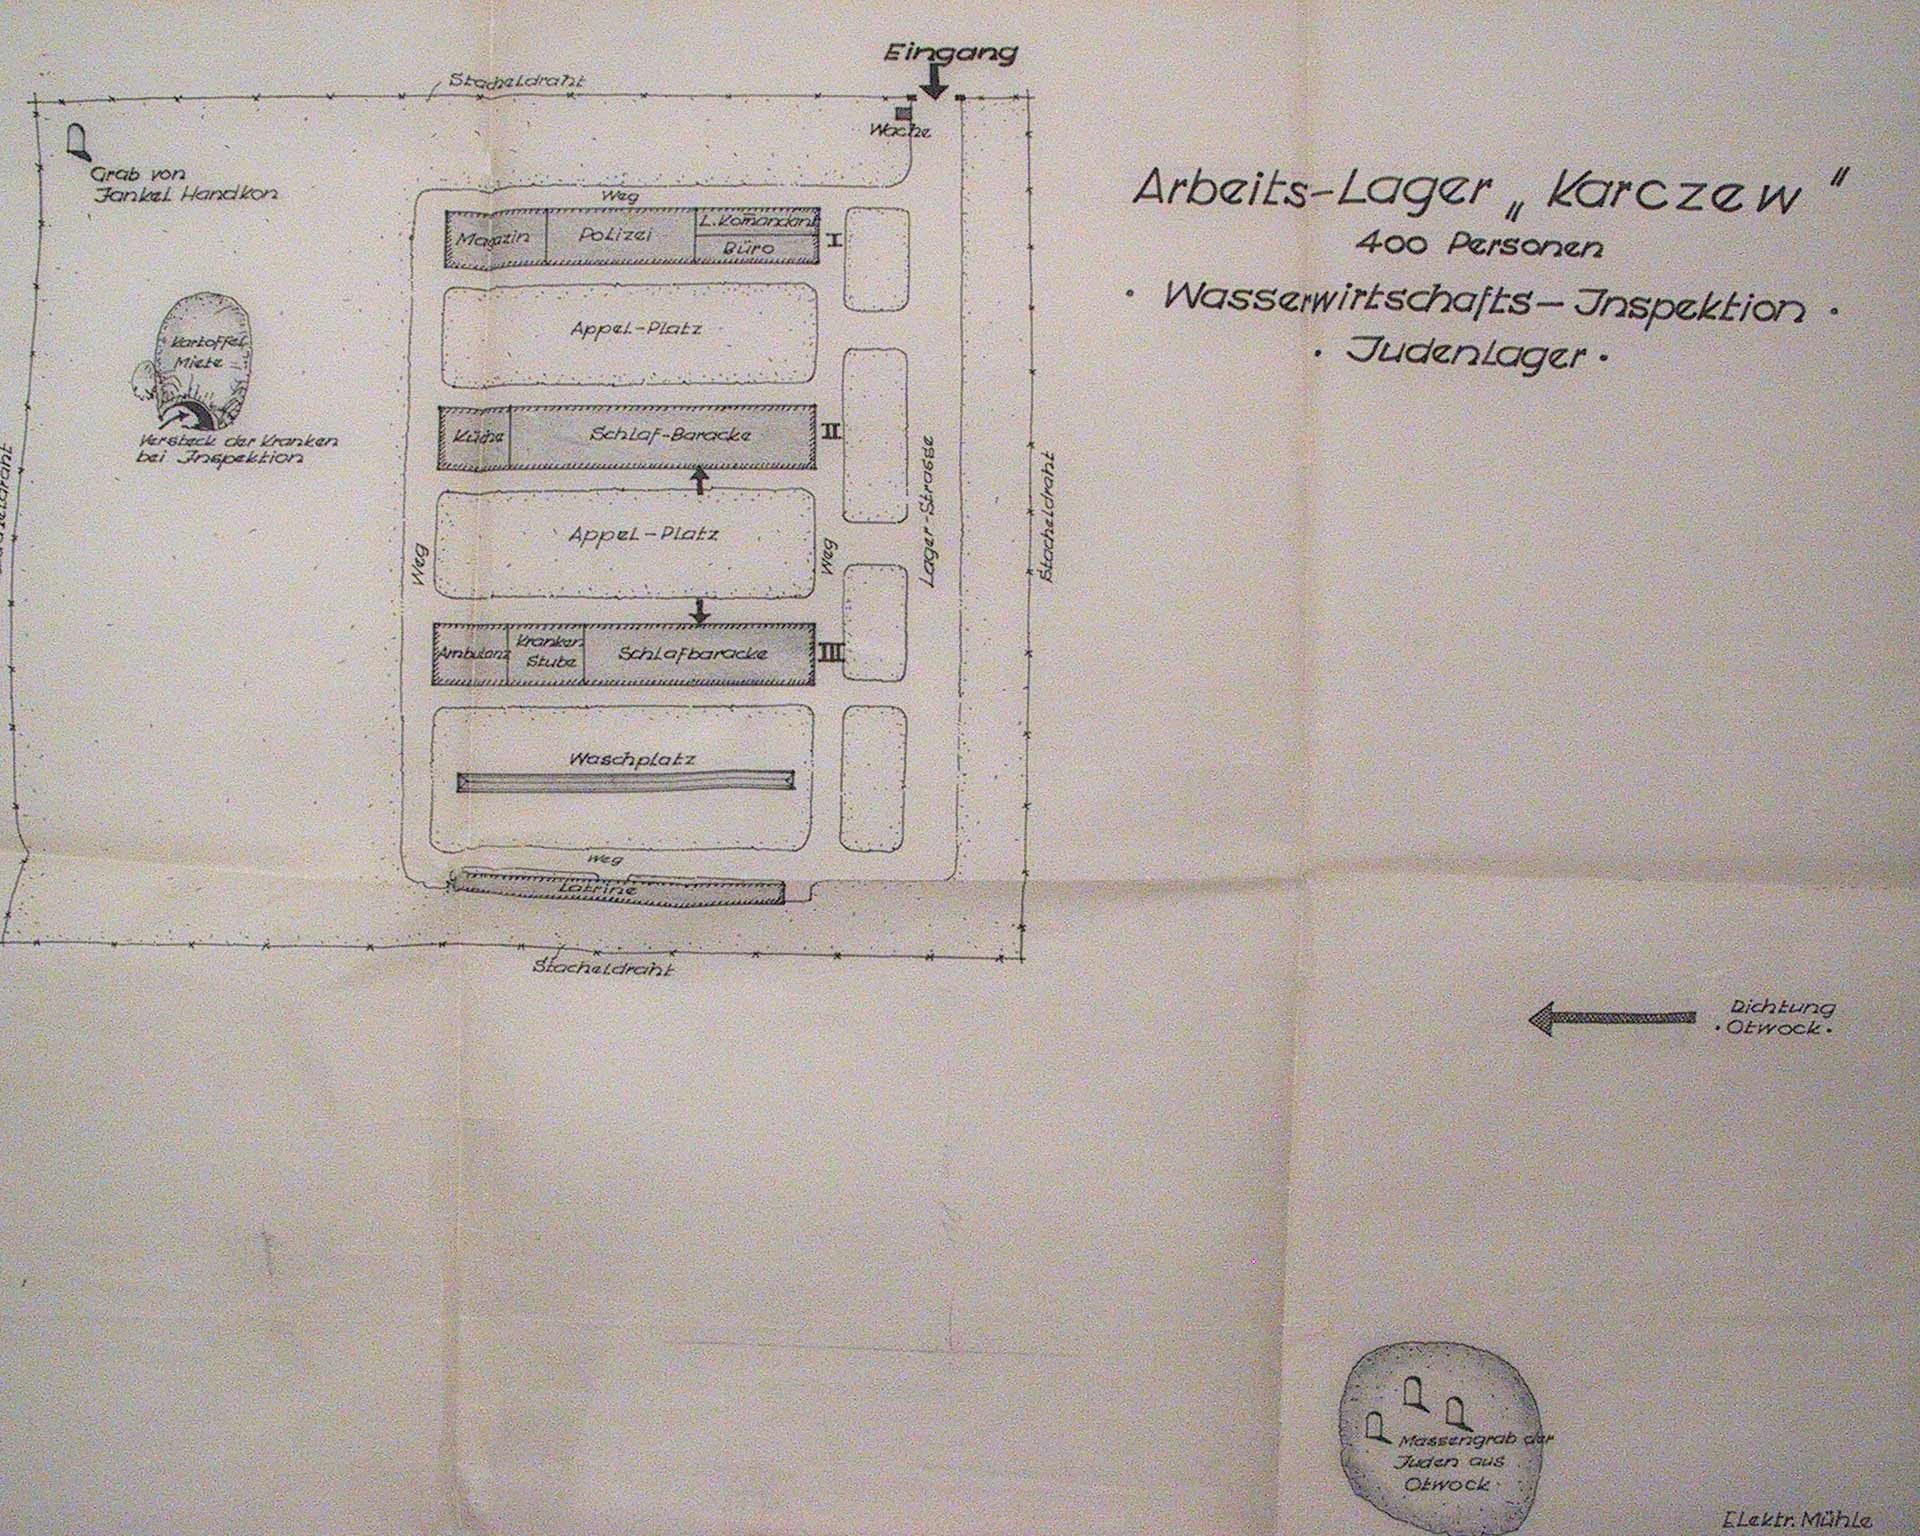 A map of the nearby Karczew forced labour camp is also attached to the document.